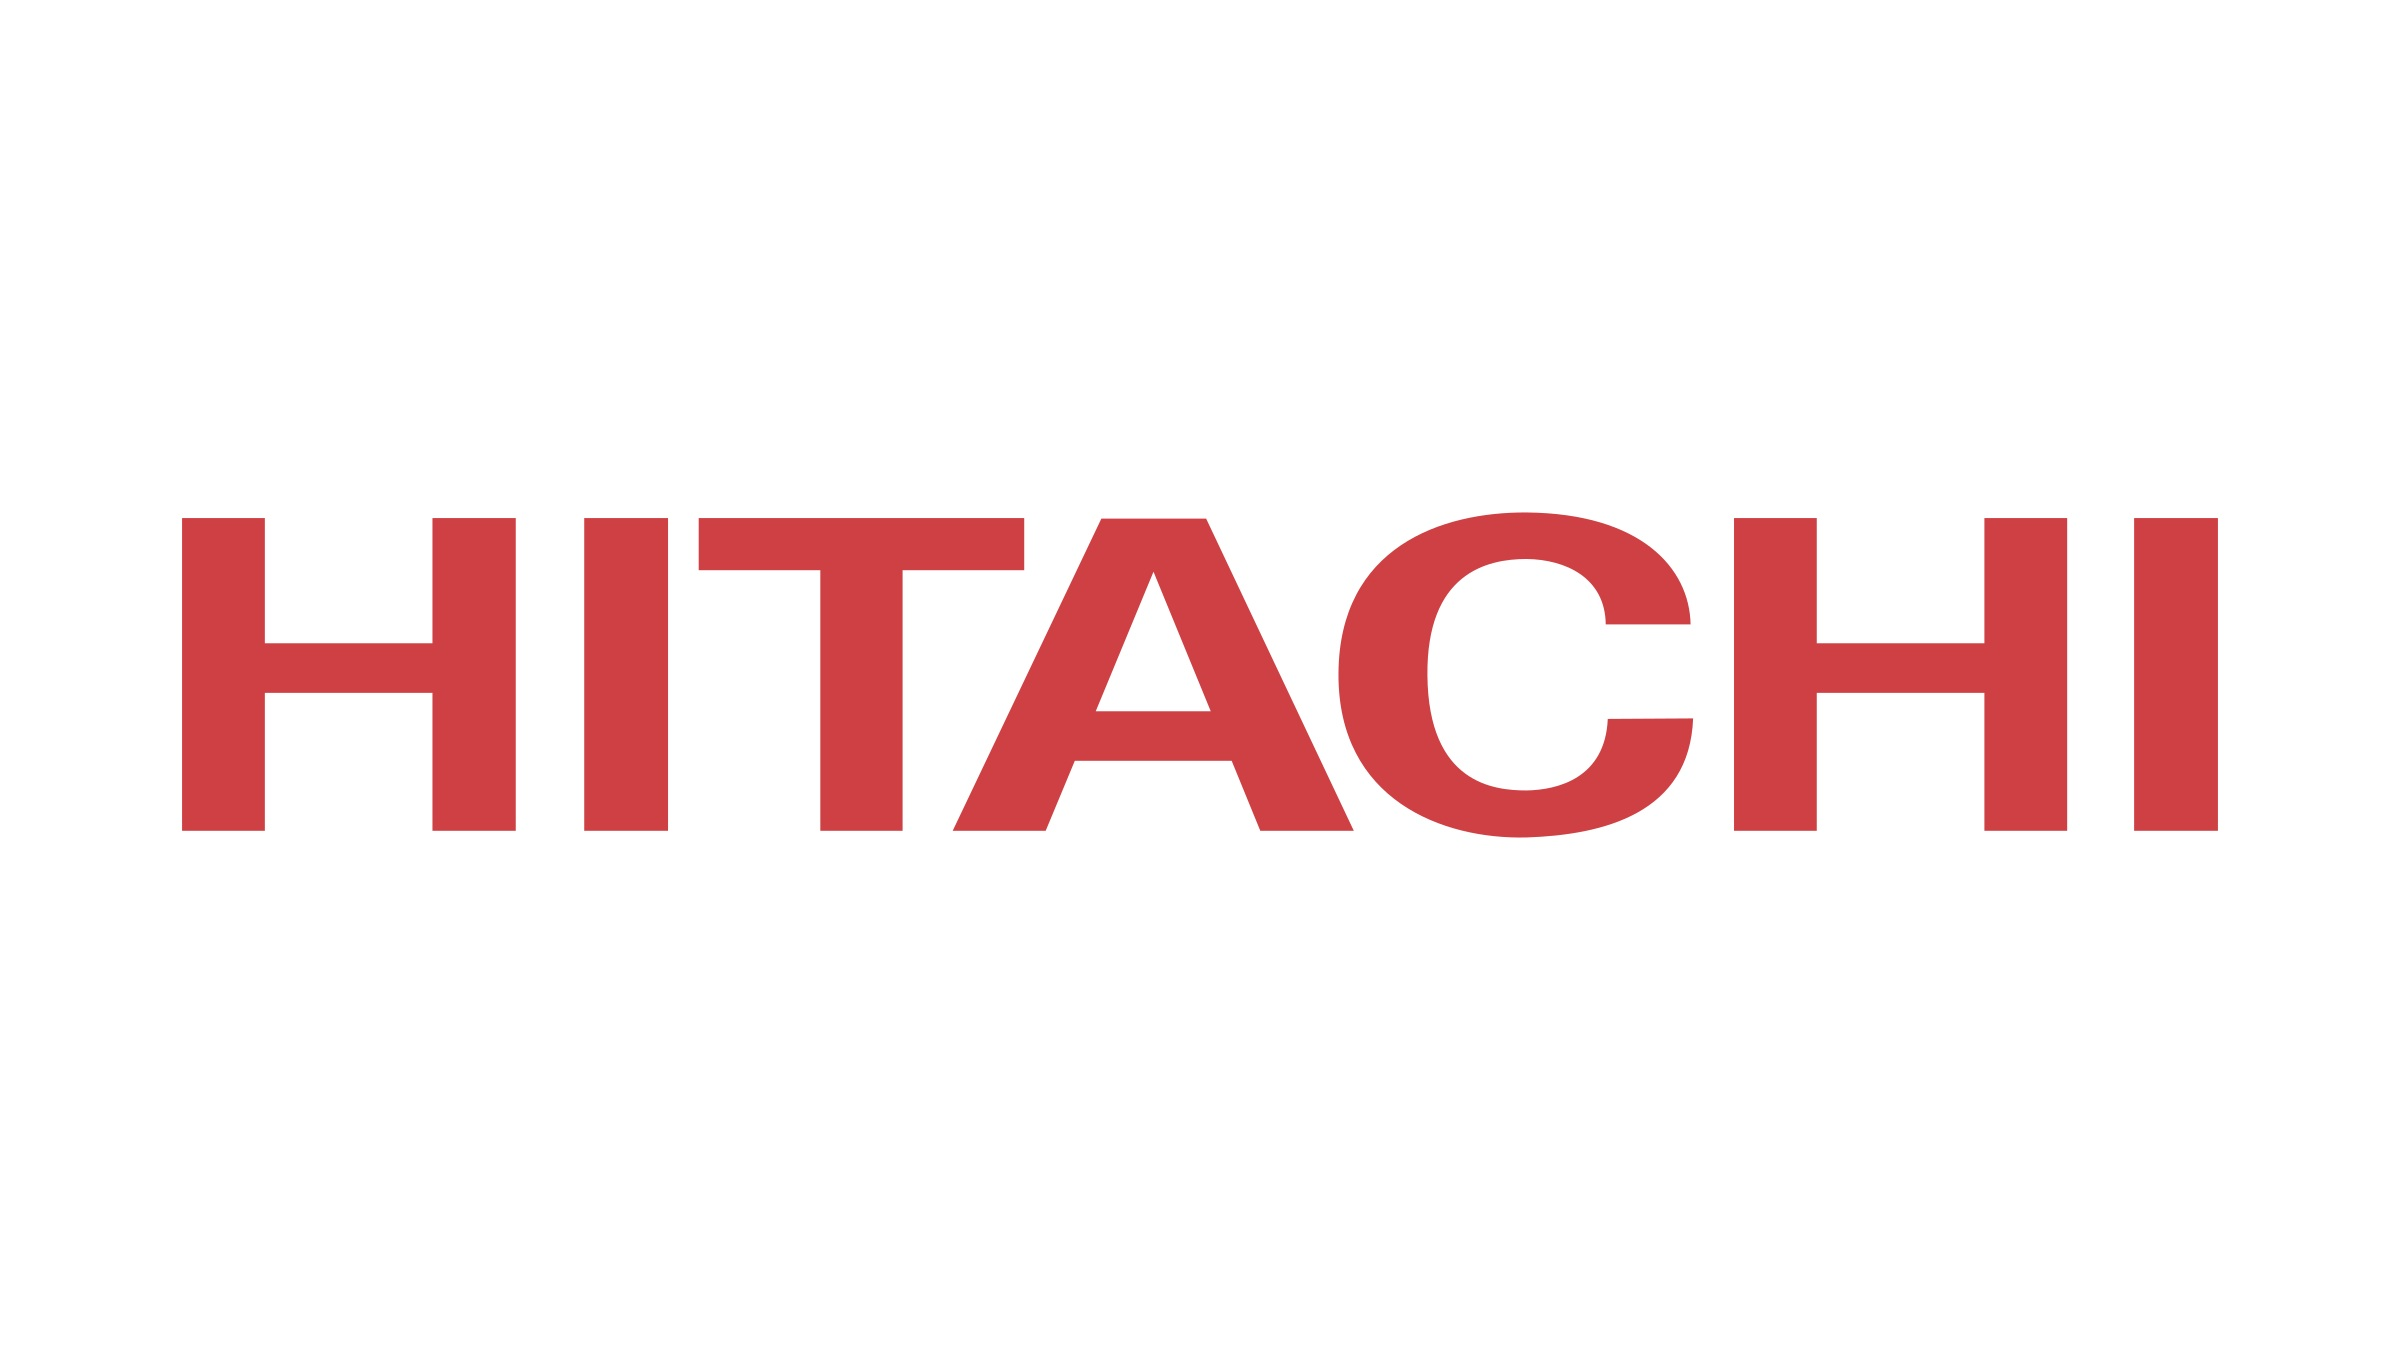 hitachi-2-logo-png-transparent.png